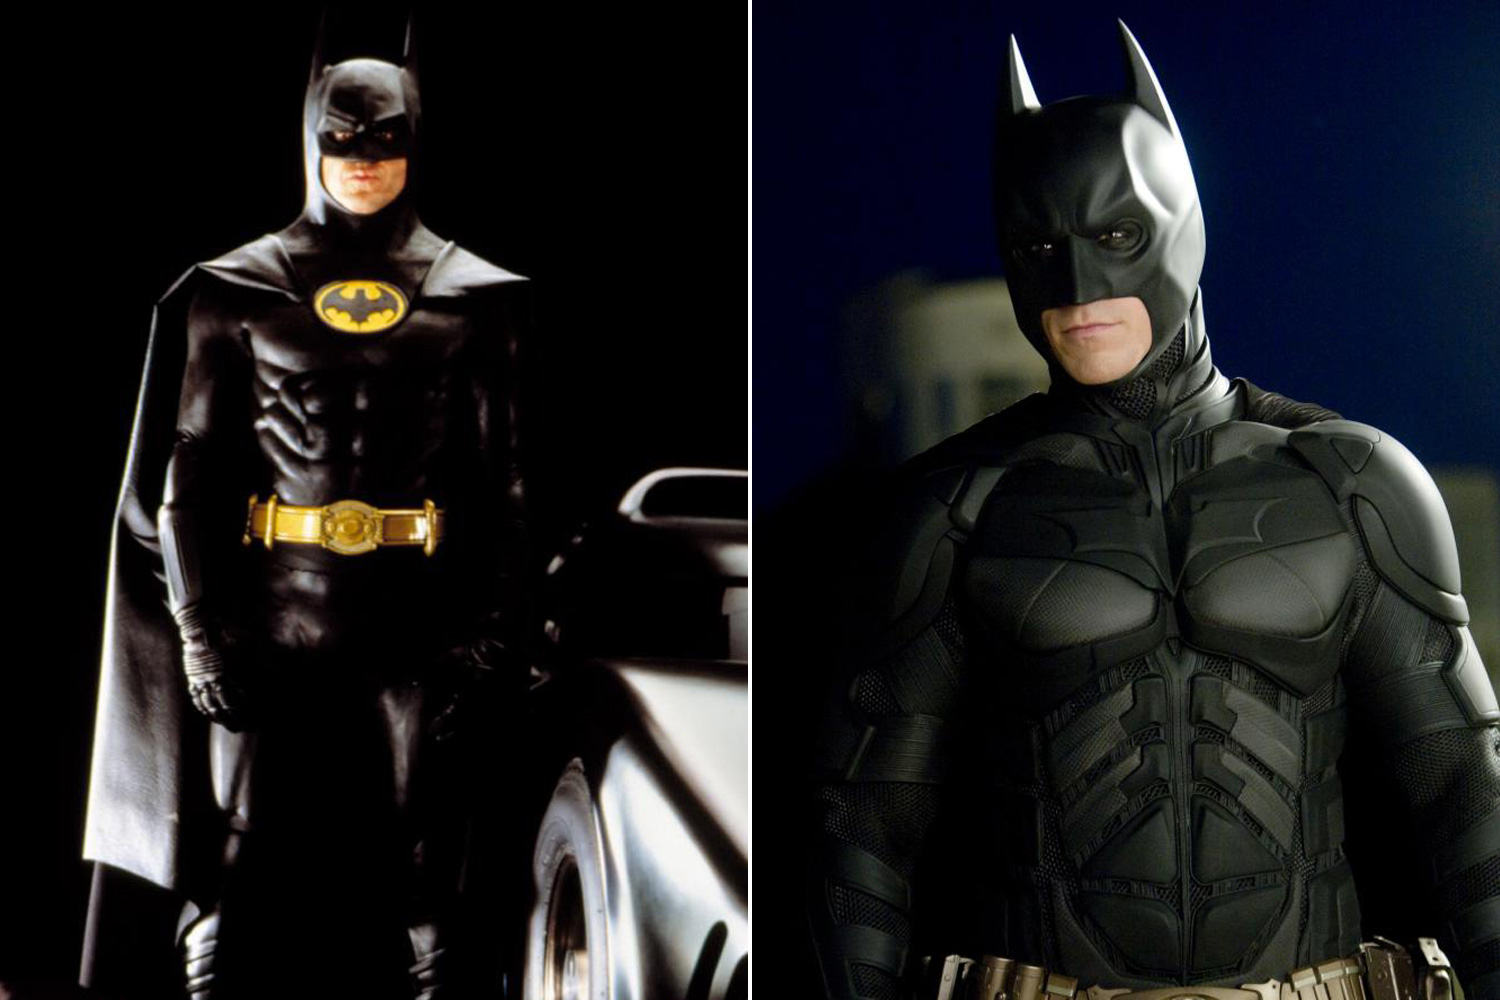 The Caped Crusader first hit the bigscreen in the 1989 Tim Burton Film, <i>Batman</i>, Starring Michael Keaton as the titular character. Batman would be rebooted by Christopher Nolan in the 2005 film <i>Batman Begins</i>, with Christian Bale playing the eccentric billionaire.